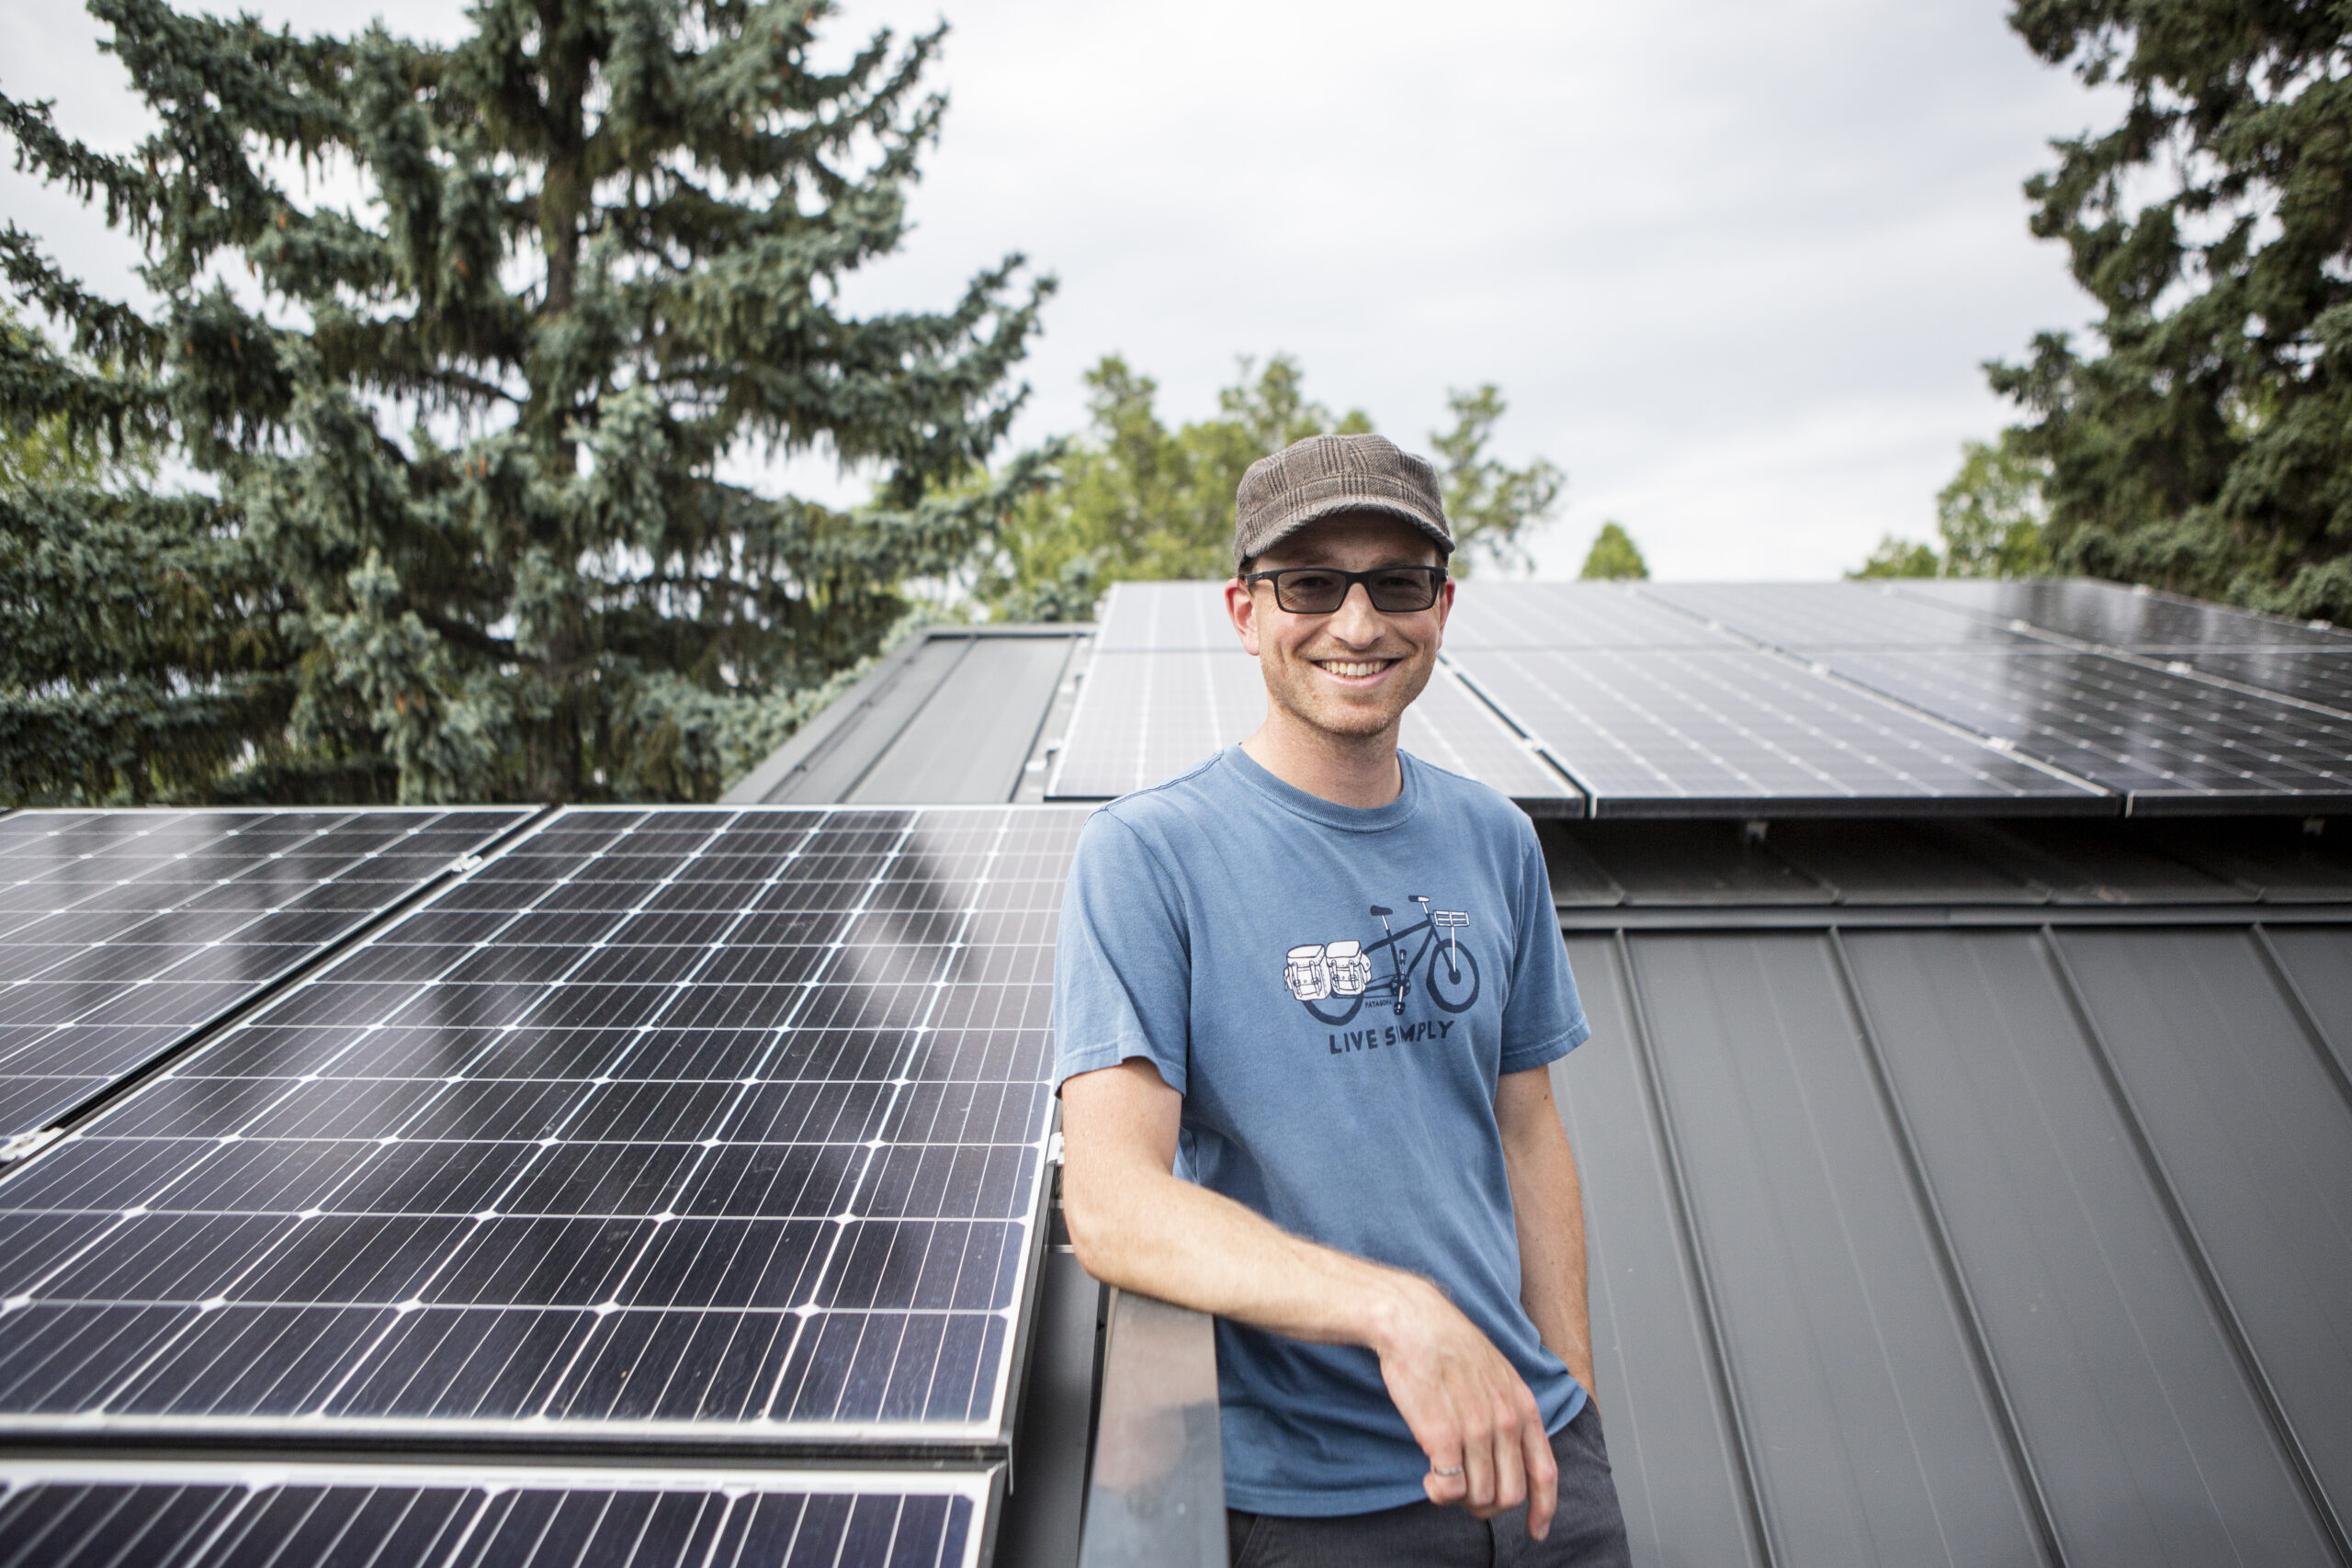 Homeowner on roof with solar panels